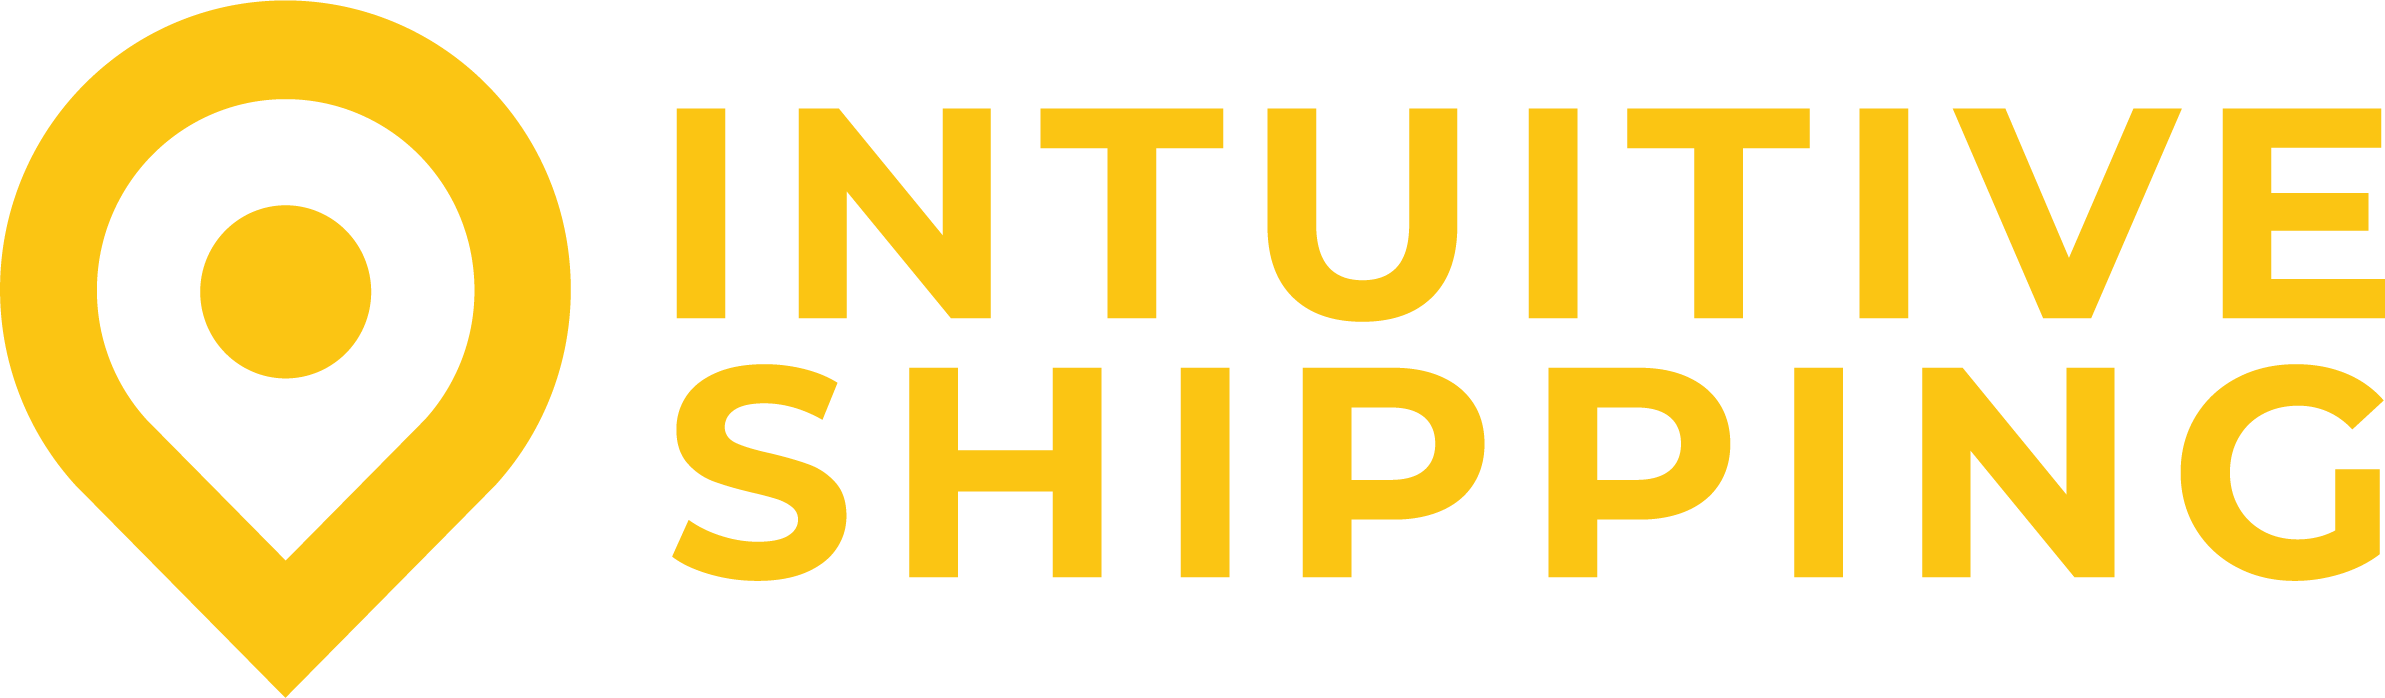 Intuitive Shipping Logo